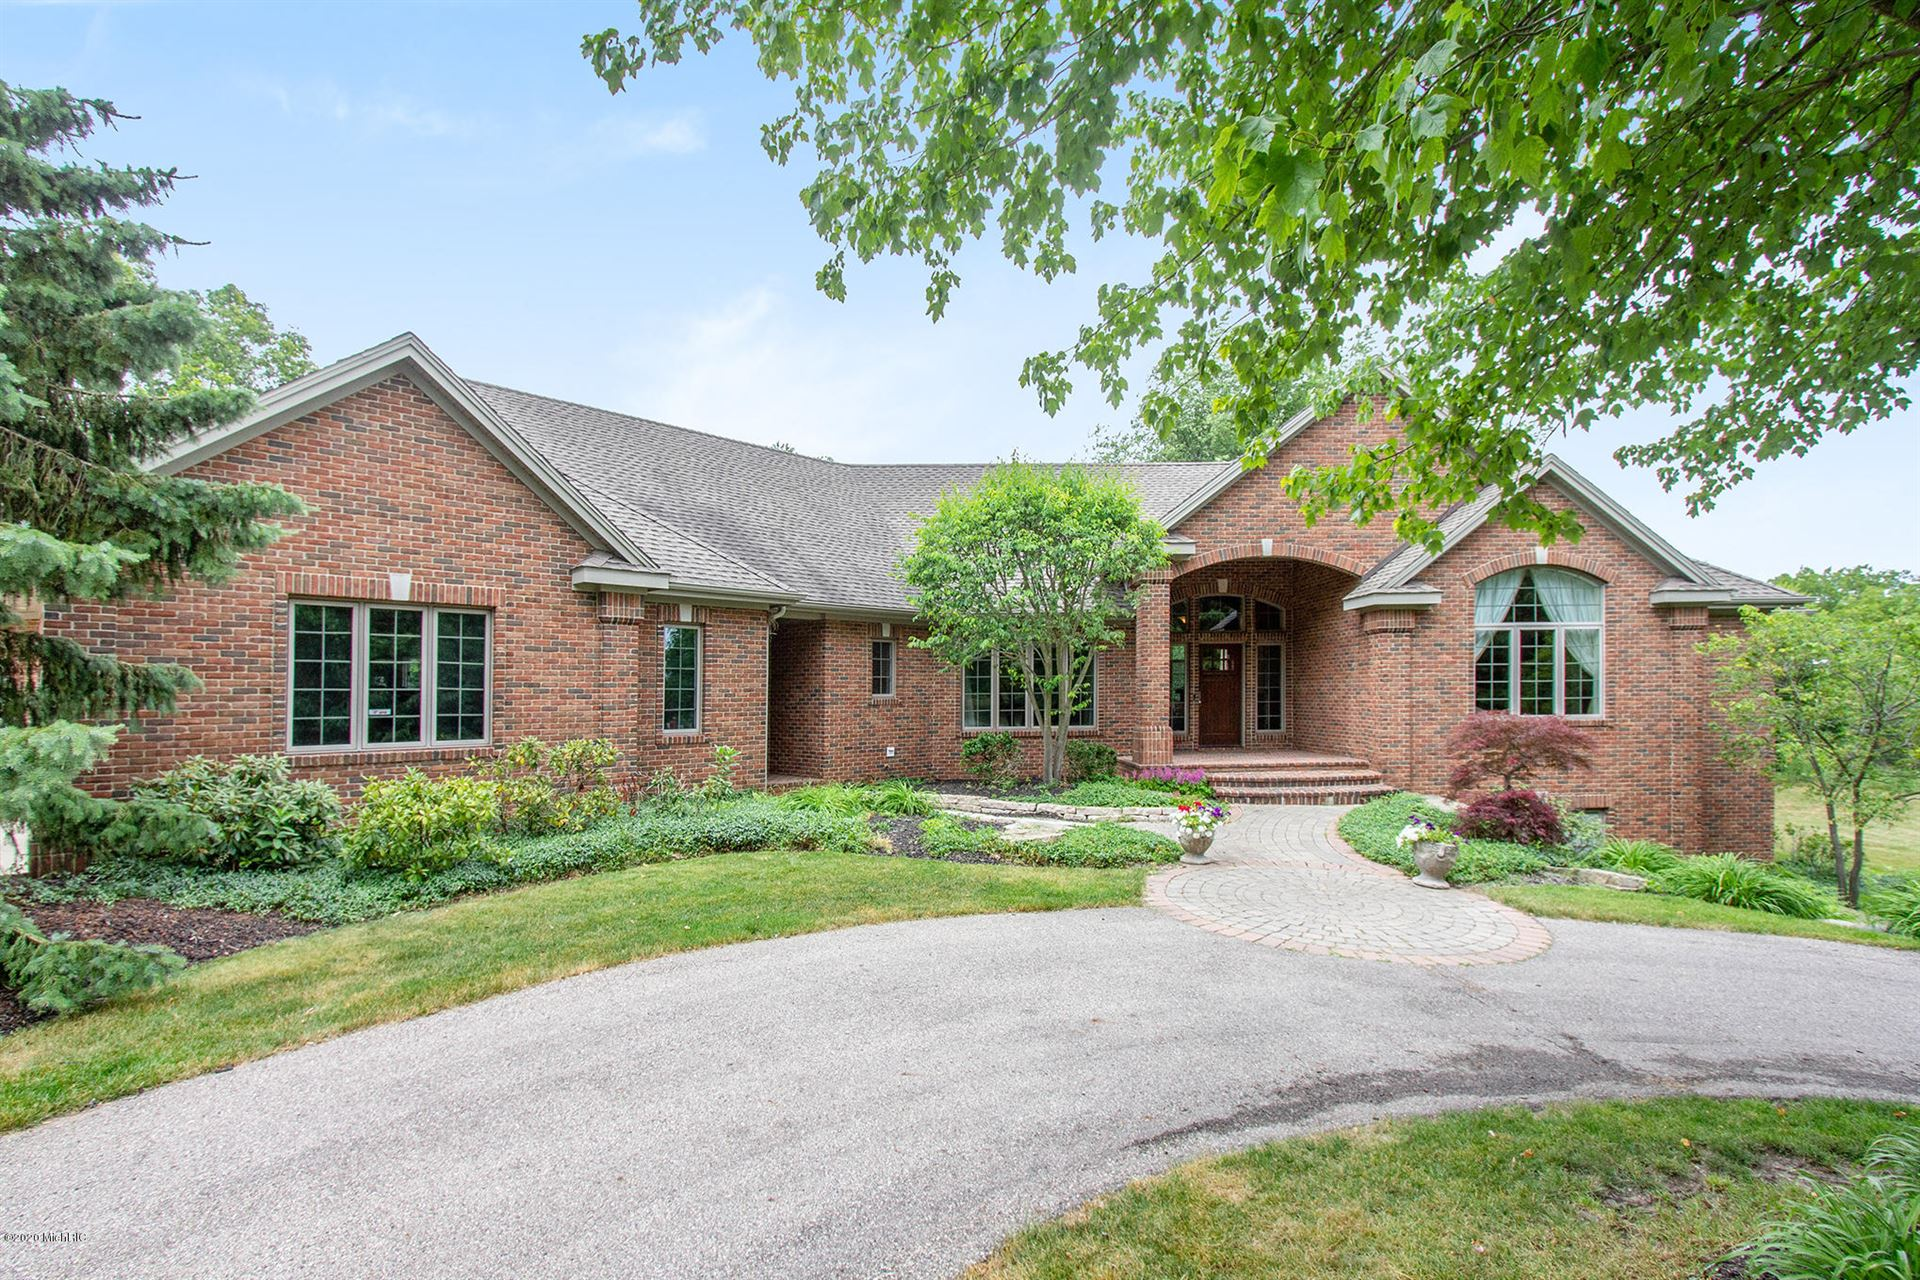 2179 Knapp Meadow Lane NE, Ada, MI 49301 - MLS#: 20028546